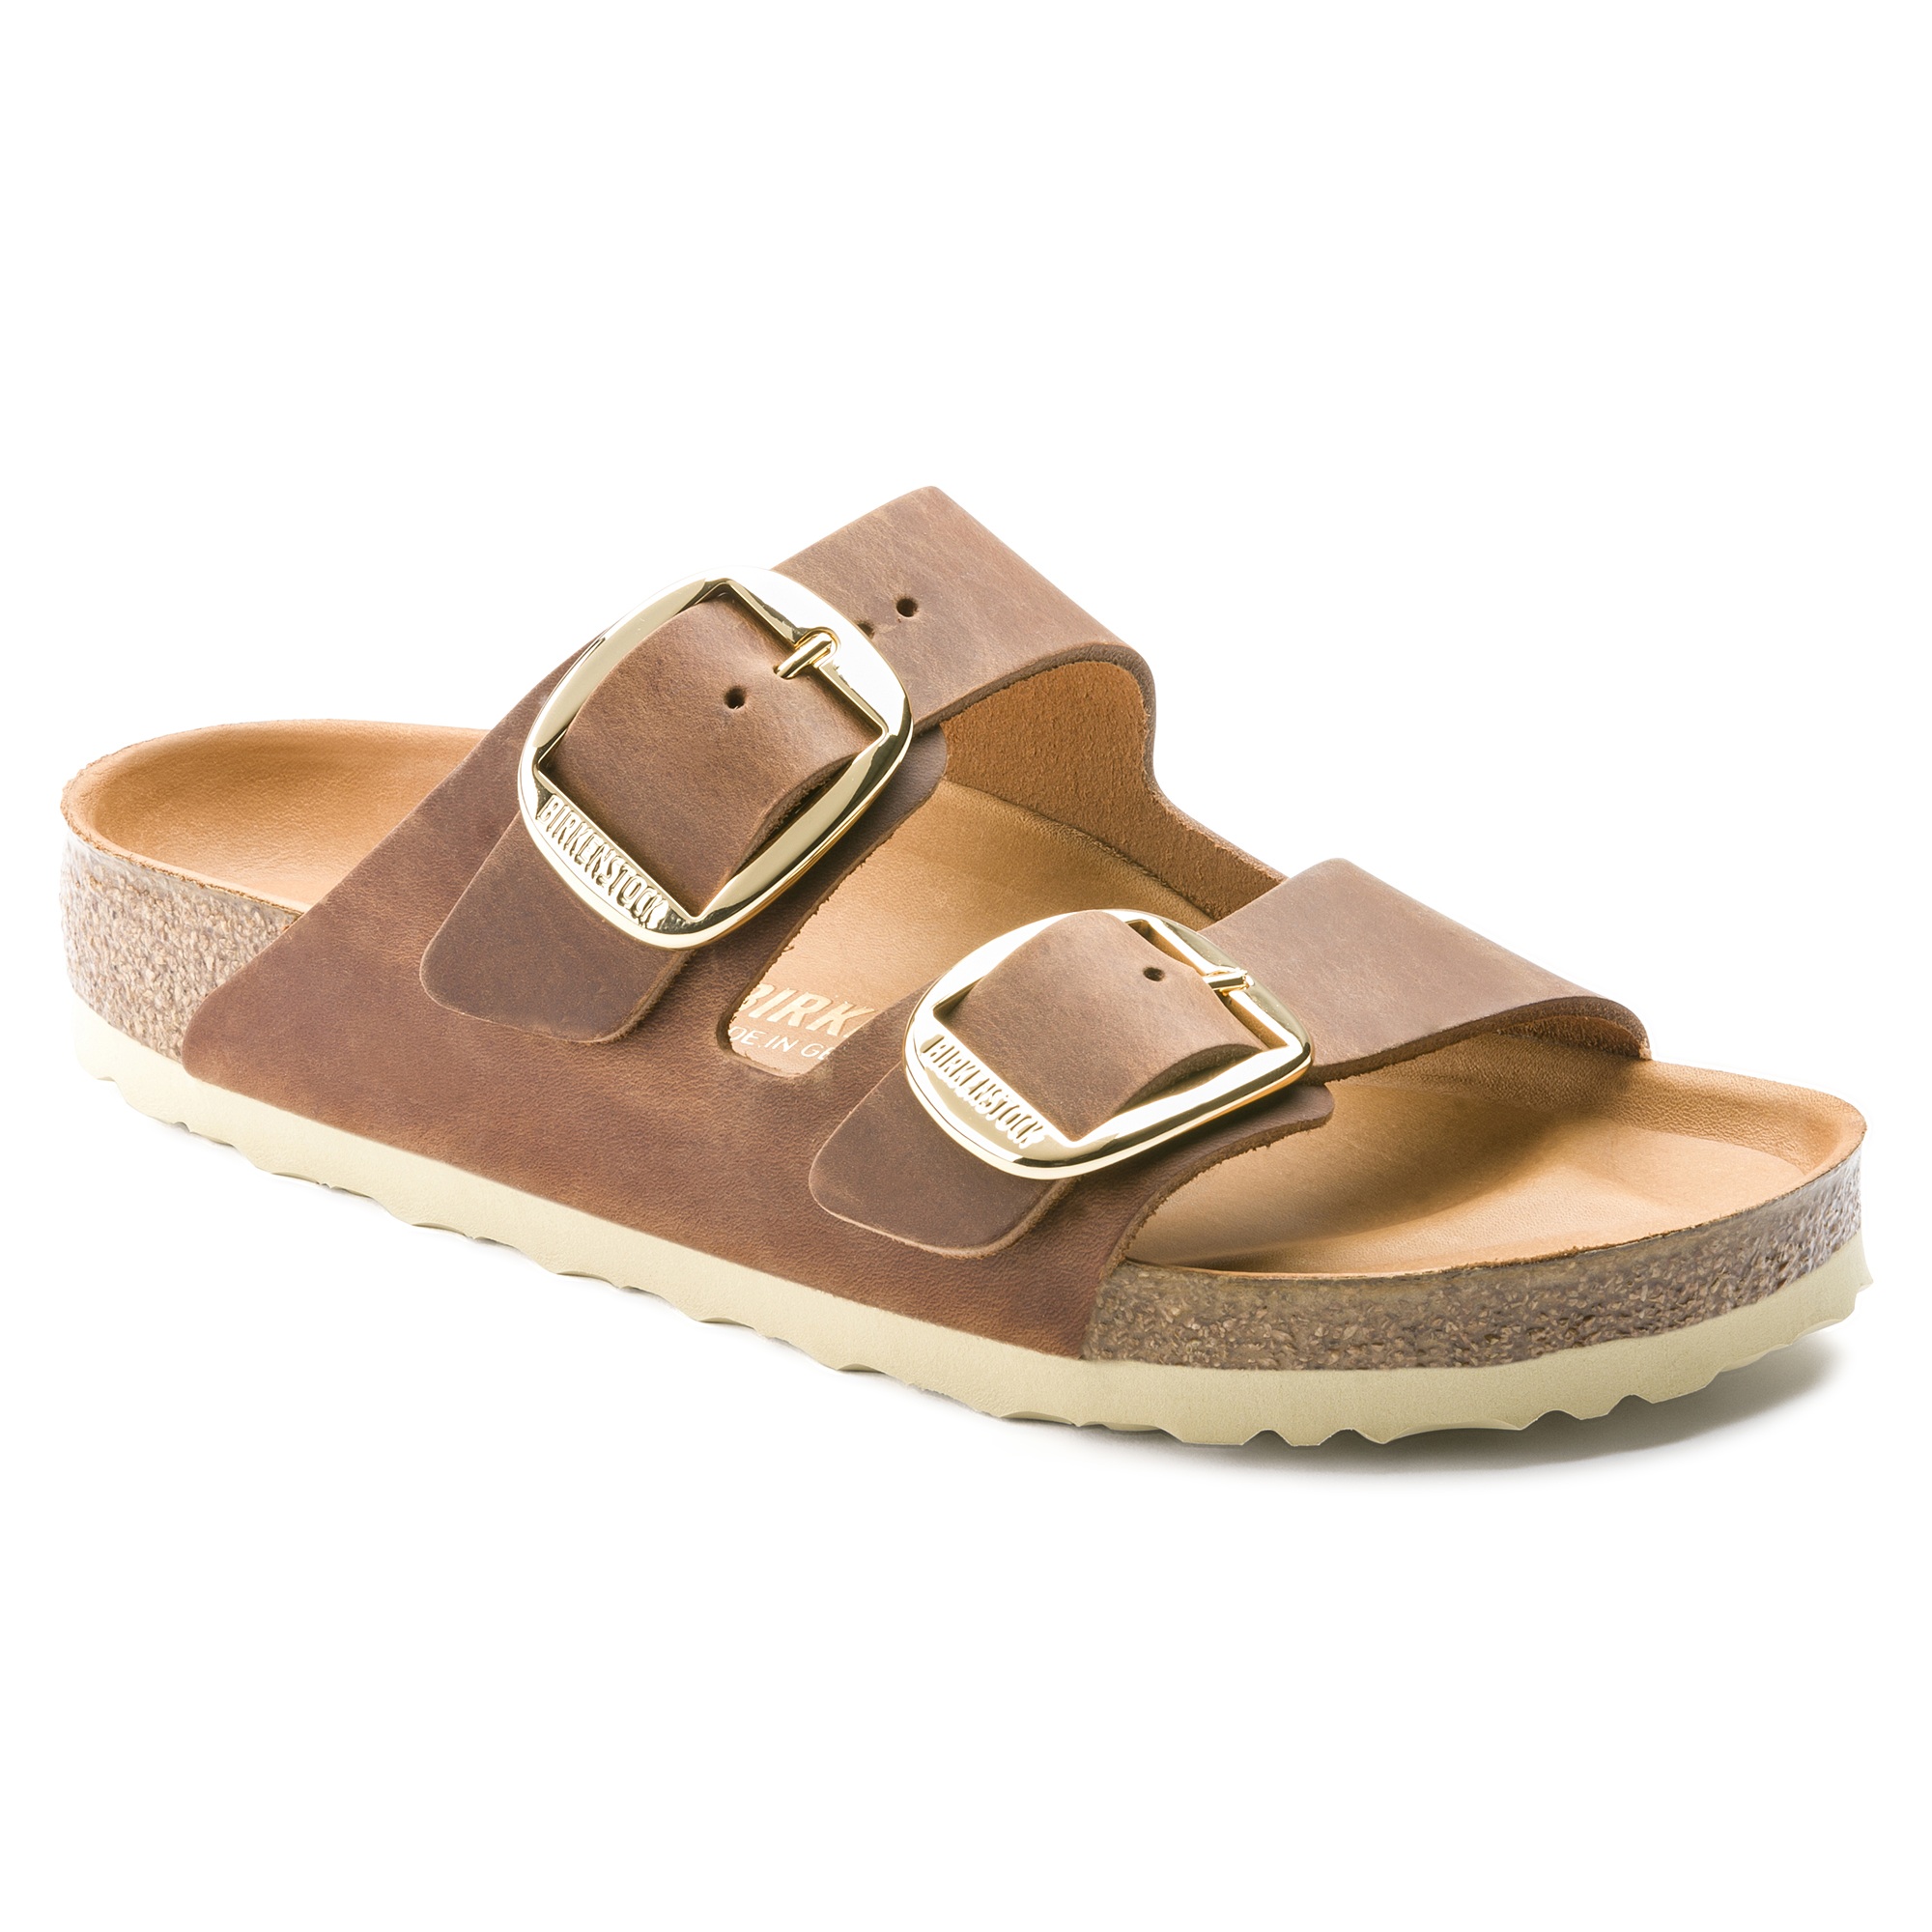 sale usa online cheap prices entire collection Arizona Oiled Leather Antique Brown | shop online at BIRKENSTOCK